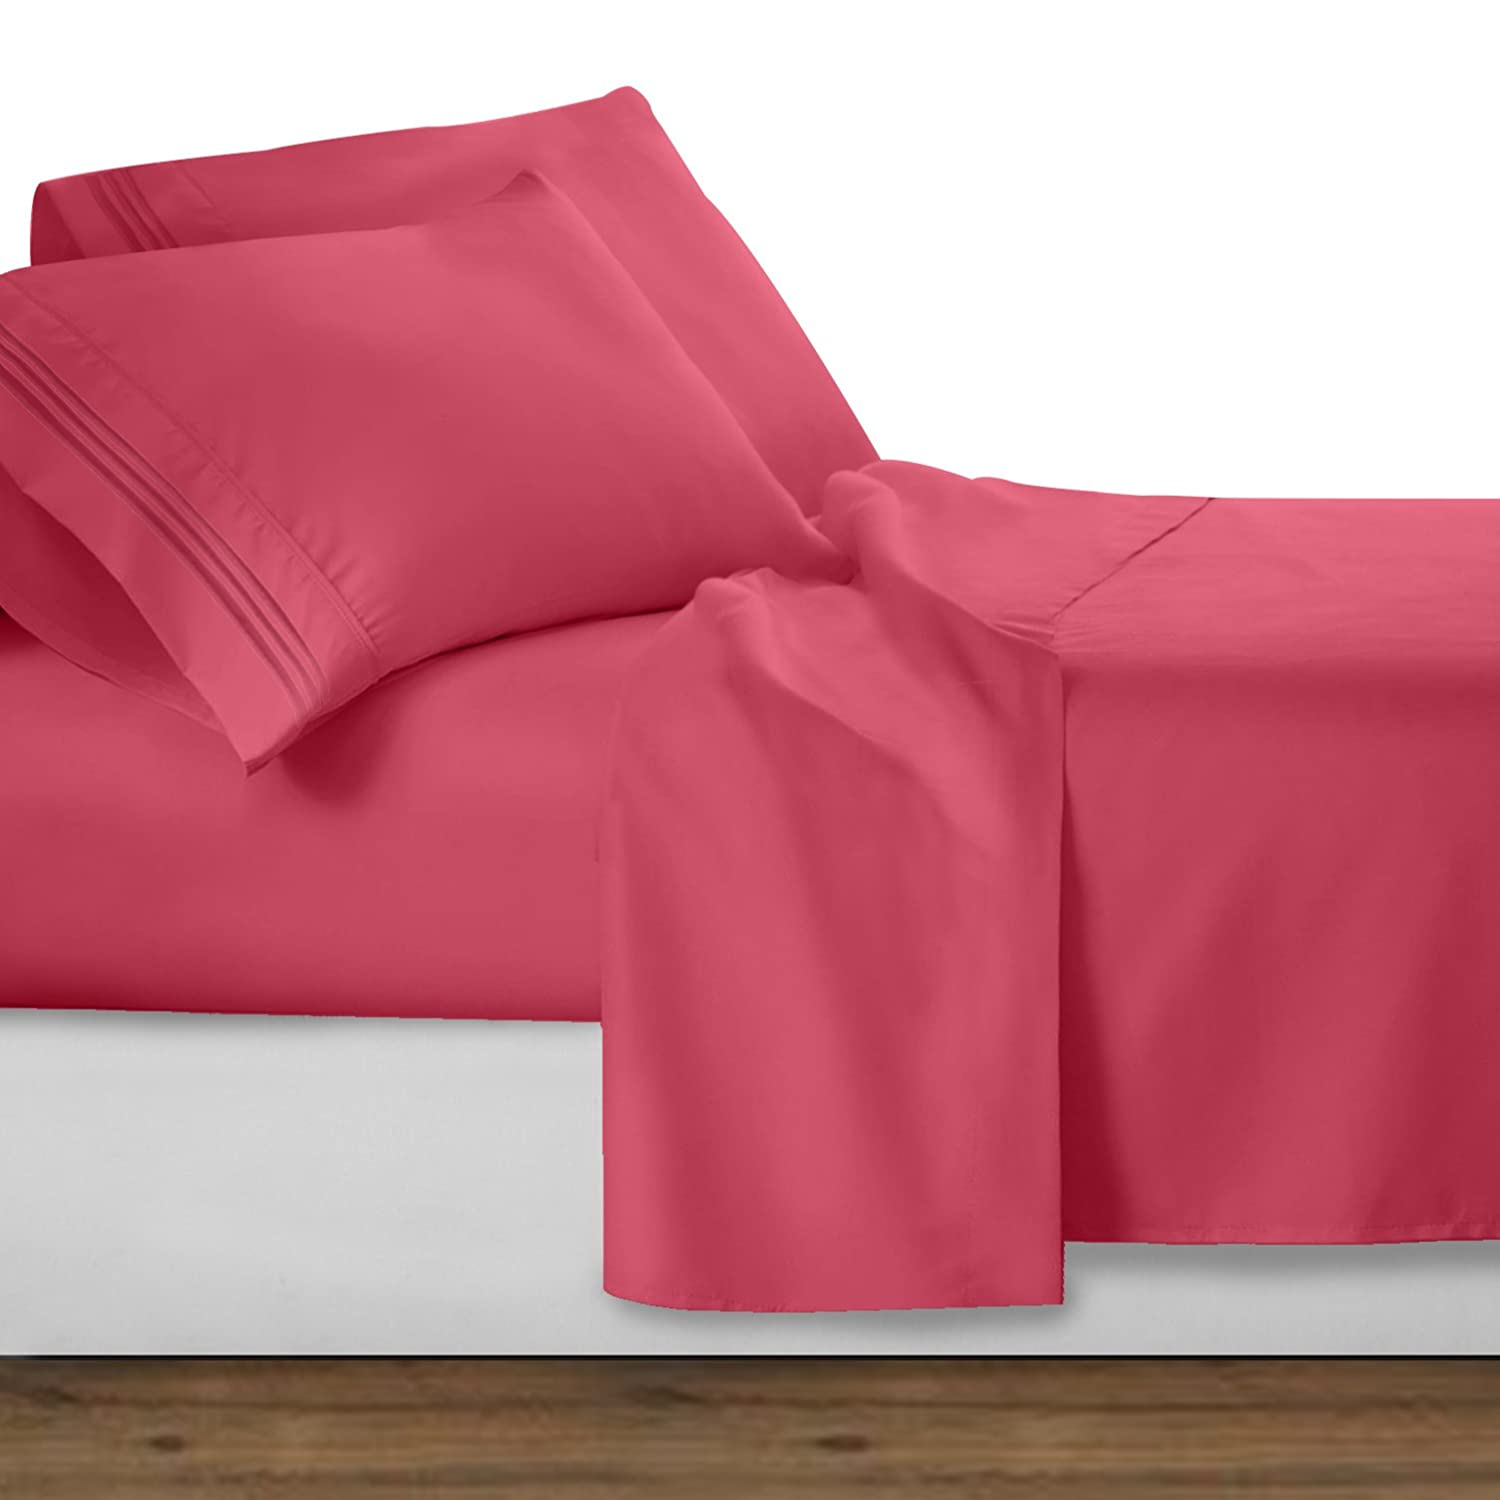 Clara Clark Premier 1800 Collection Deluxe Microfiber 3-Line Bed Sheet Set, Queen, Coral Pink